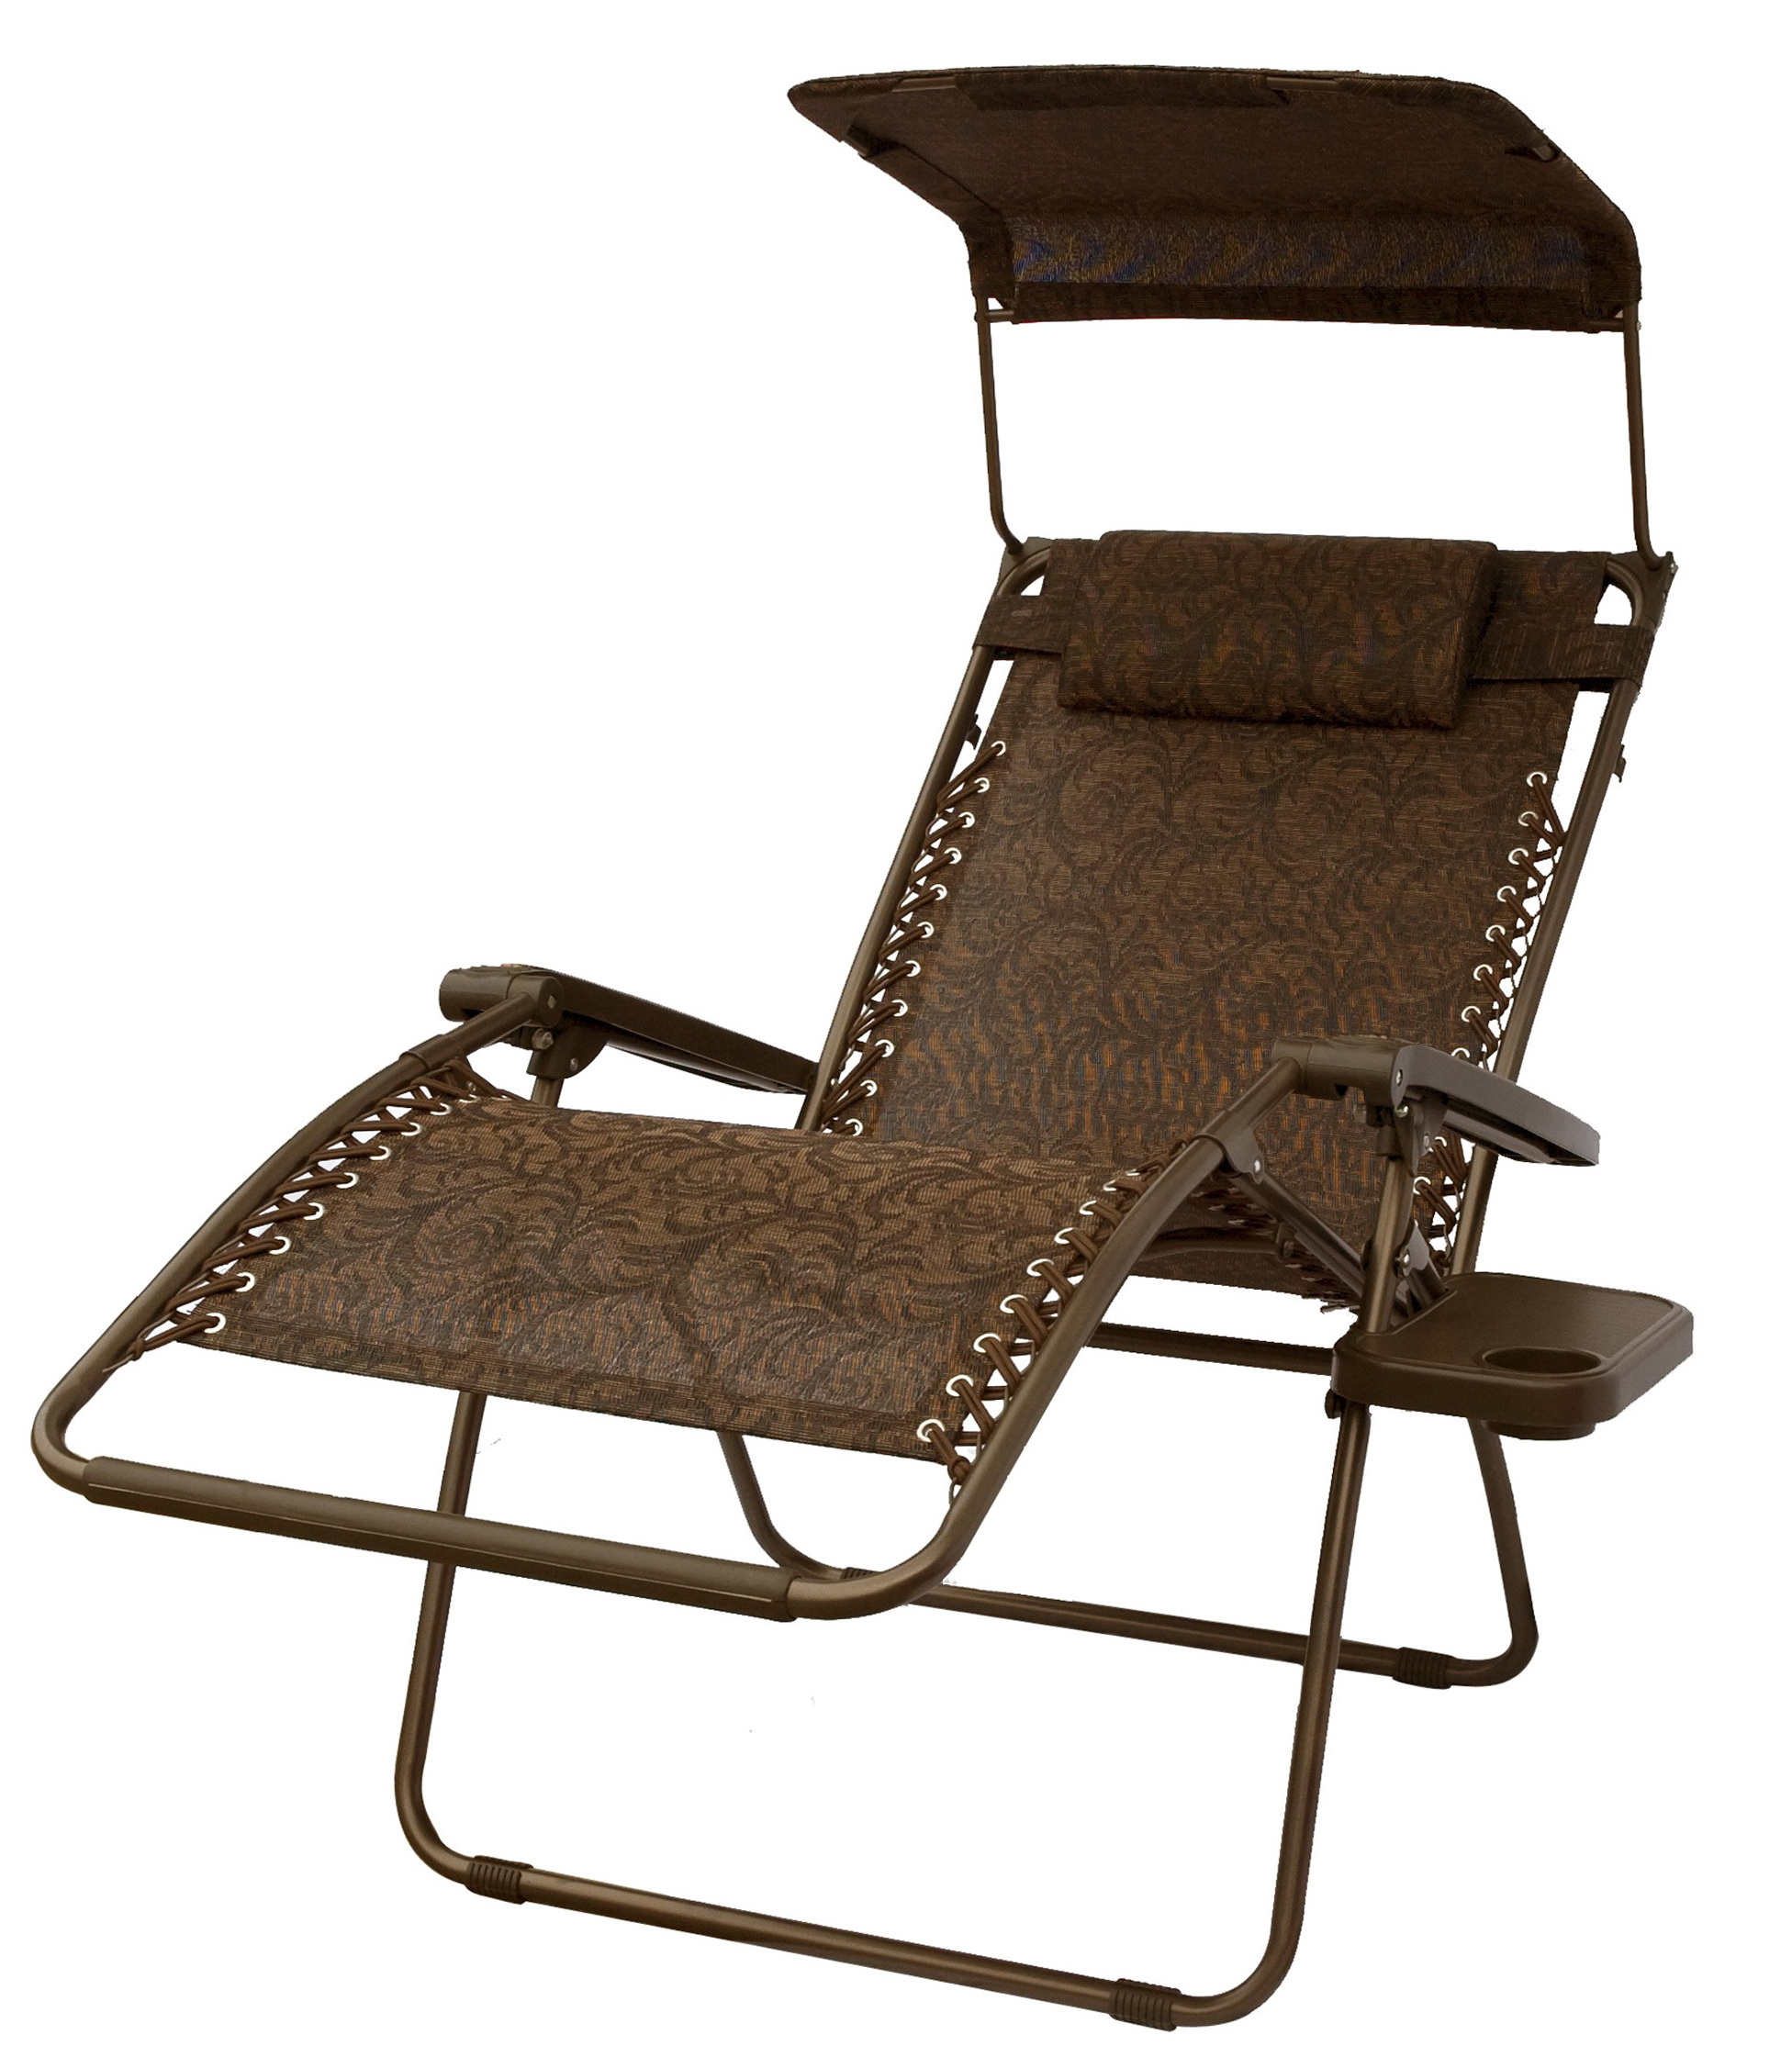 Zero gravity chaise lounge chairs home design ideas for Chaise zero gravite